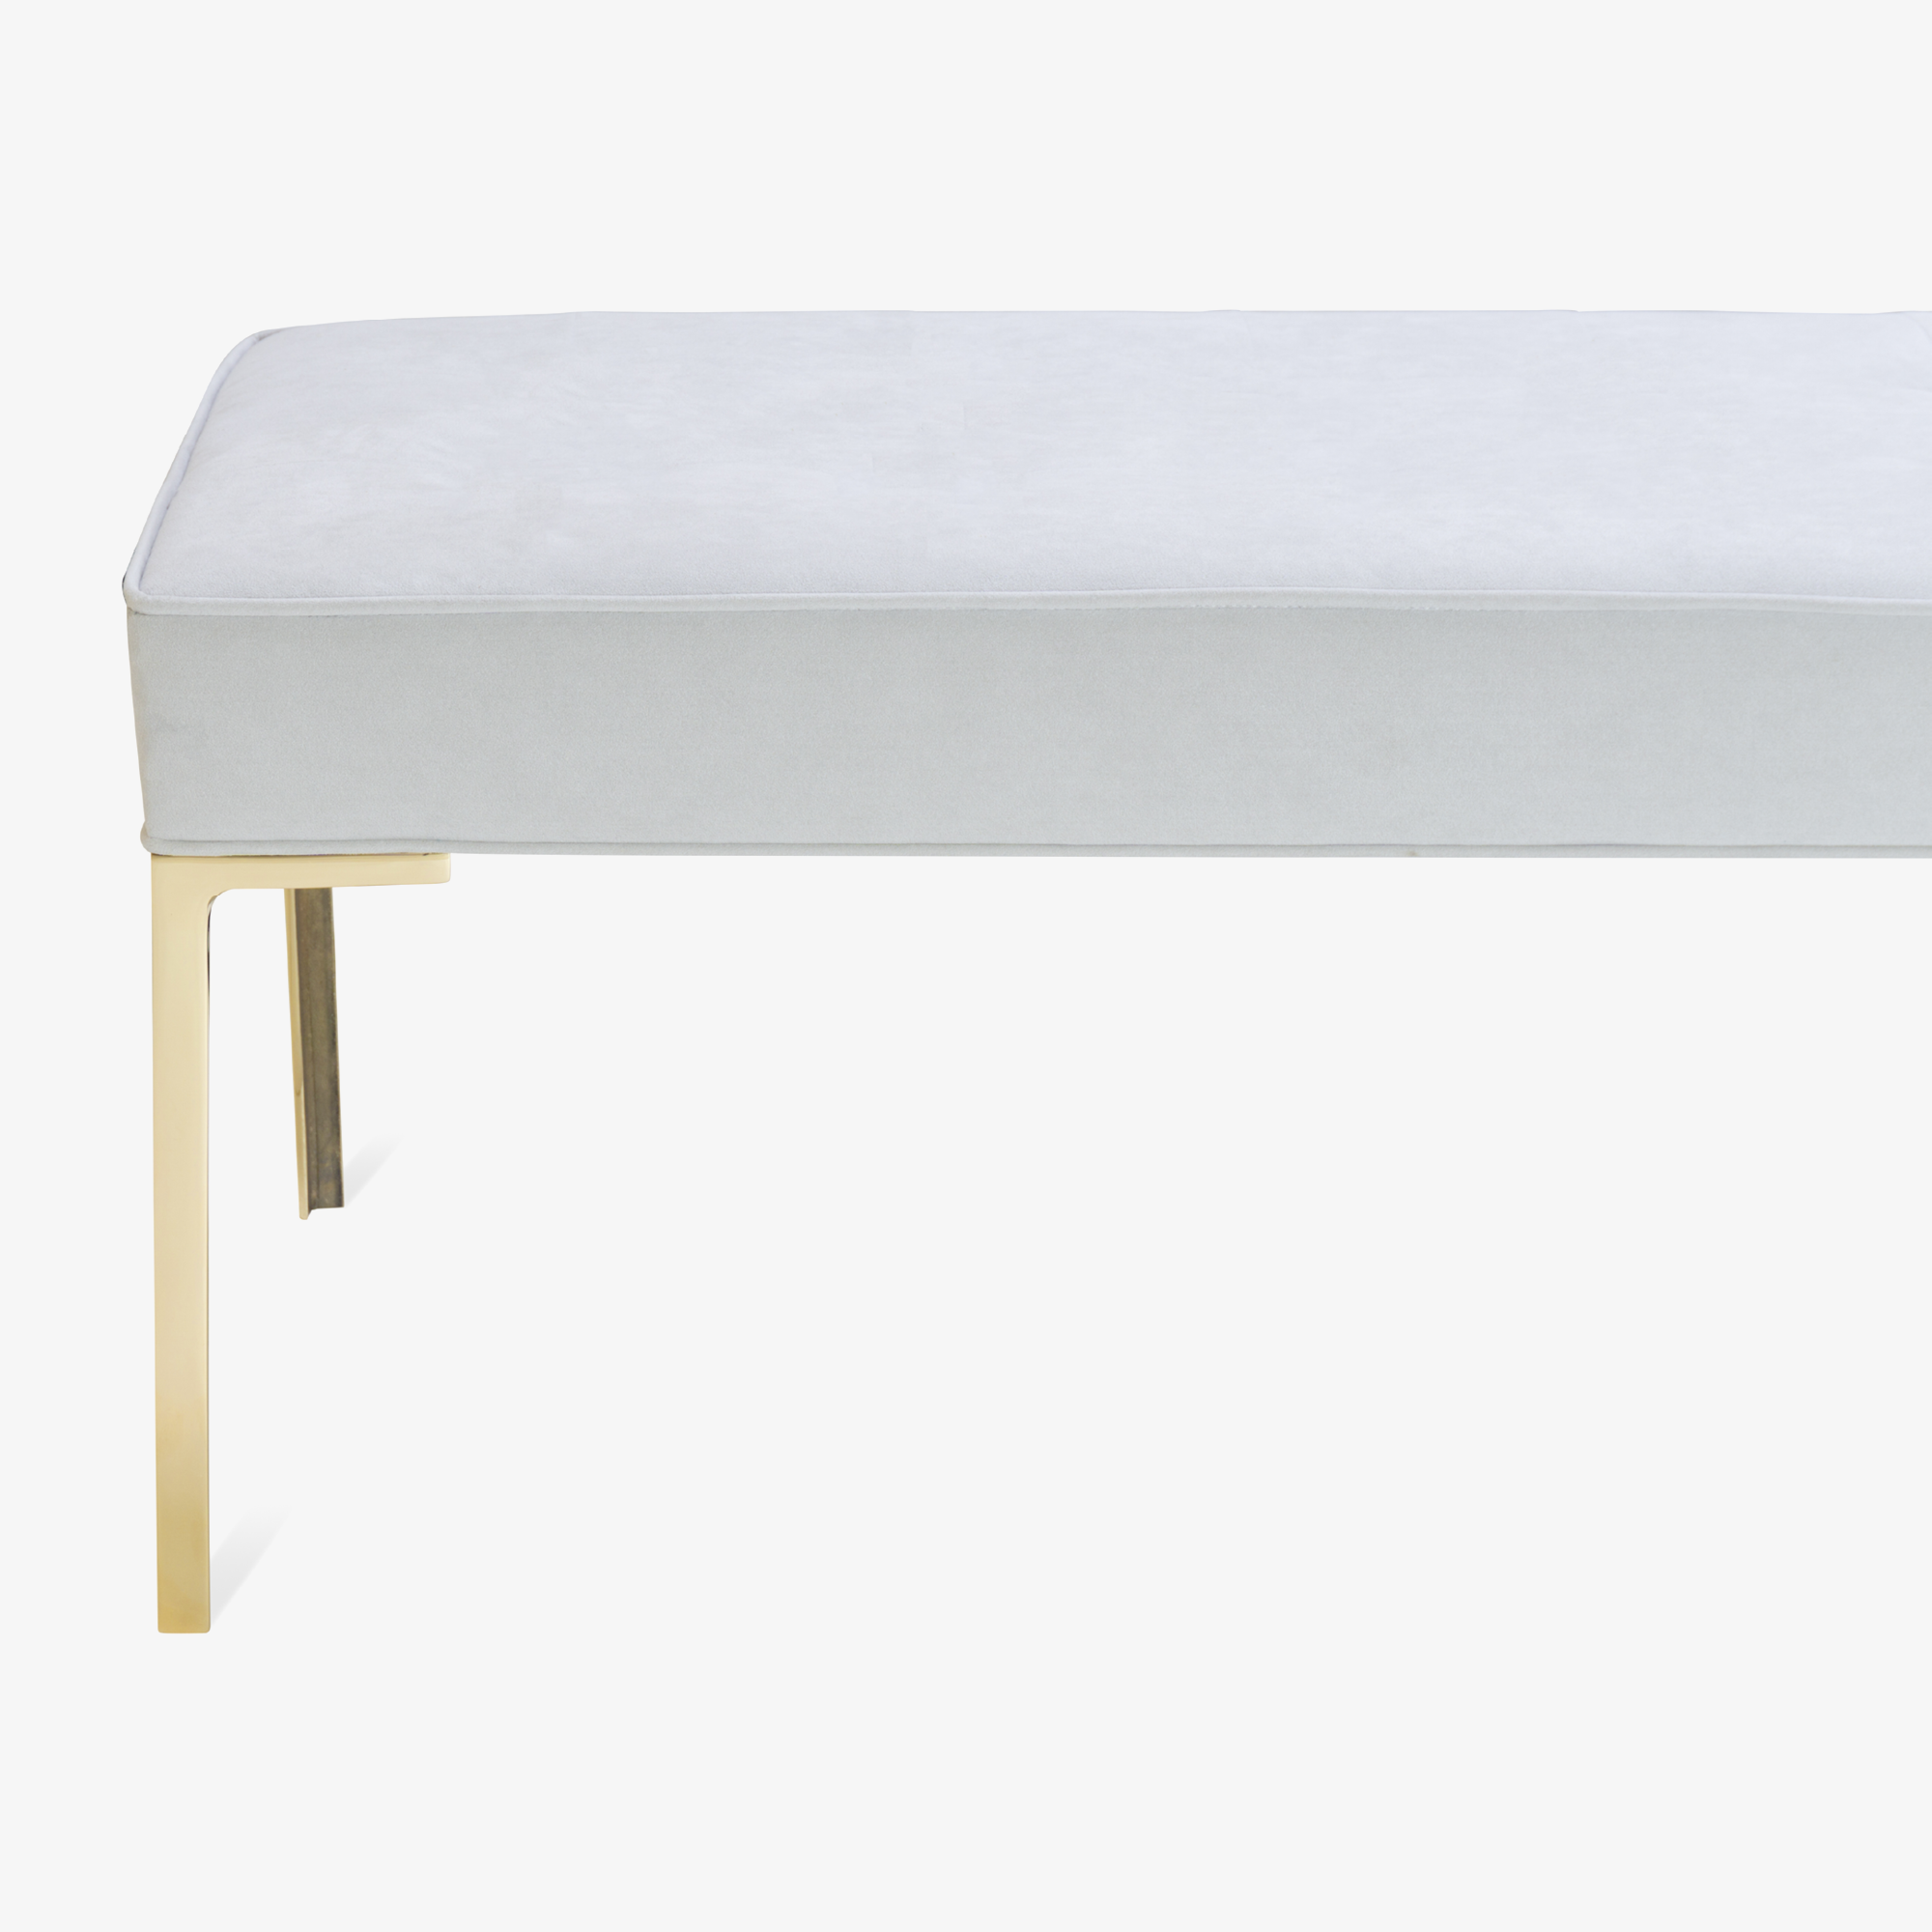 Astor 60%22 Brass Bench in Dove Luxe Suede5.png